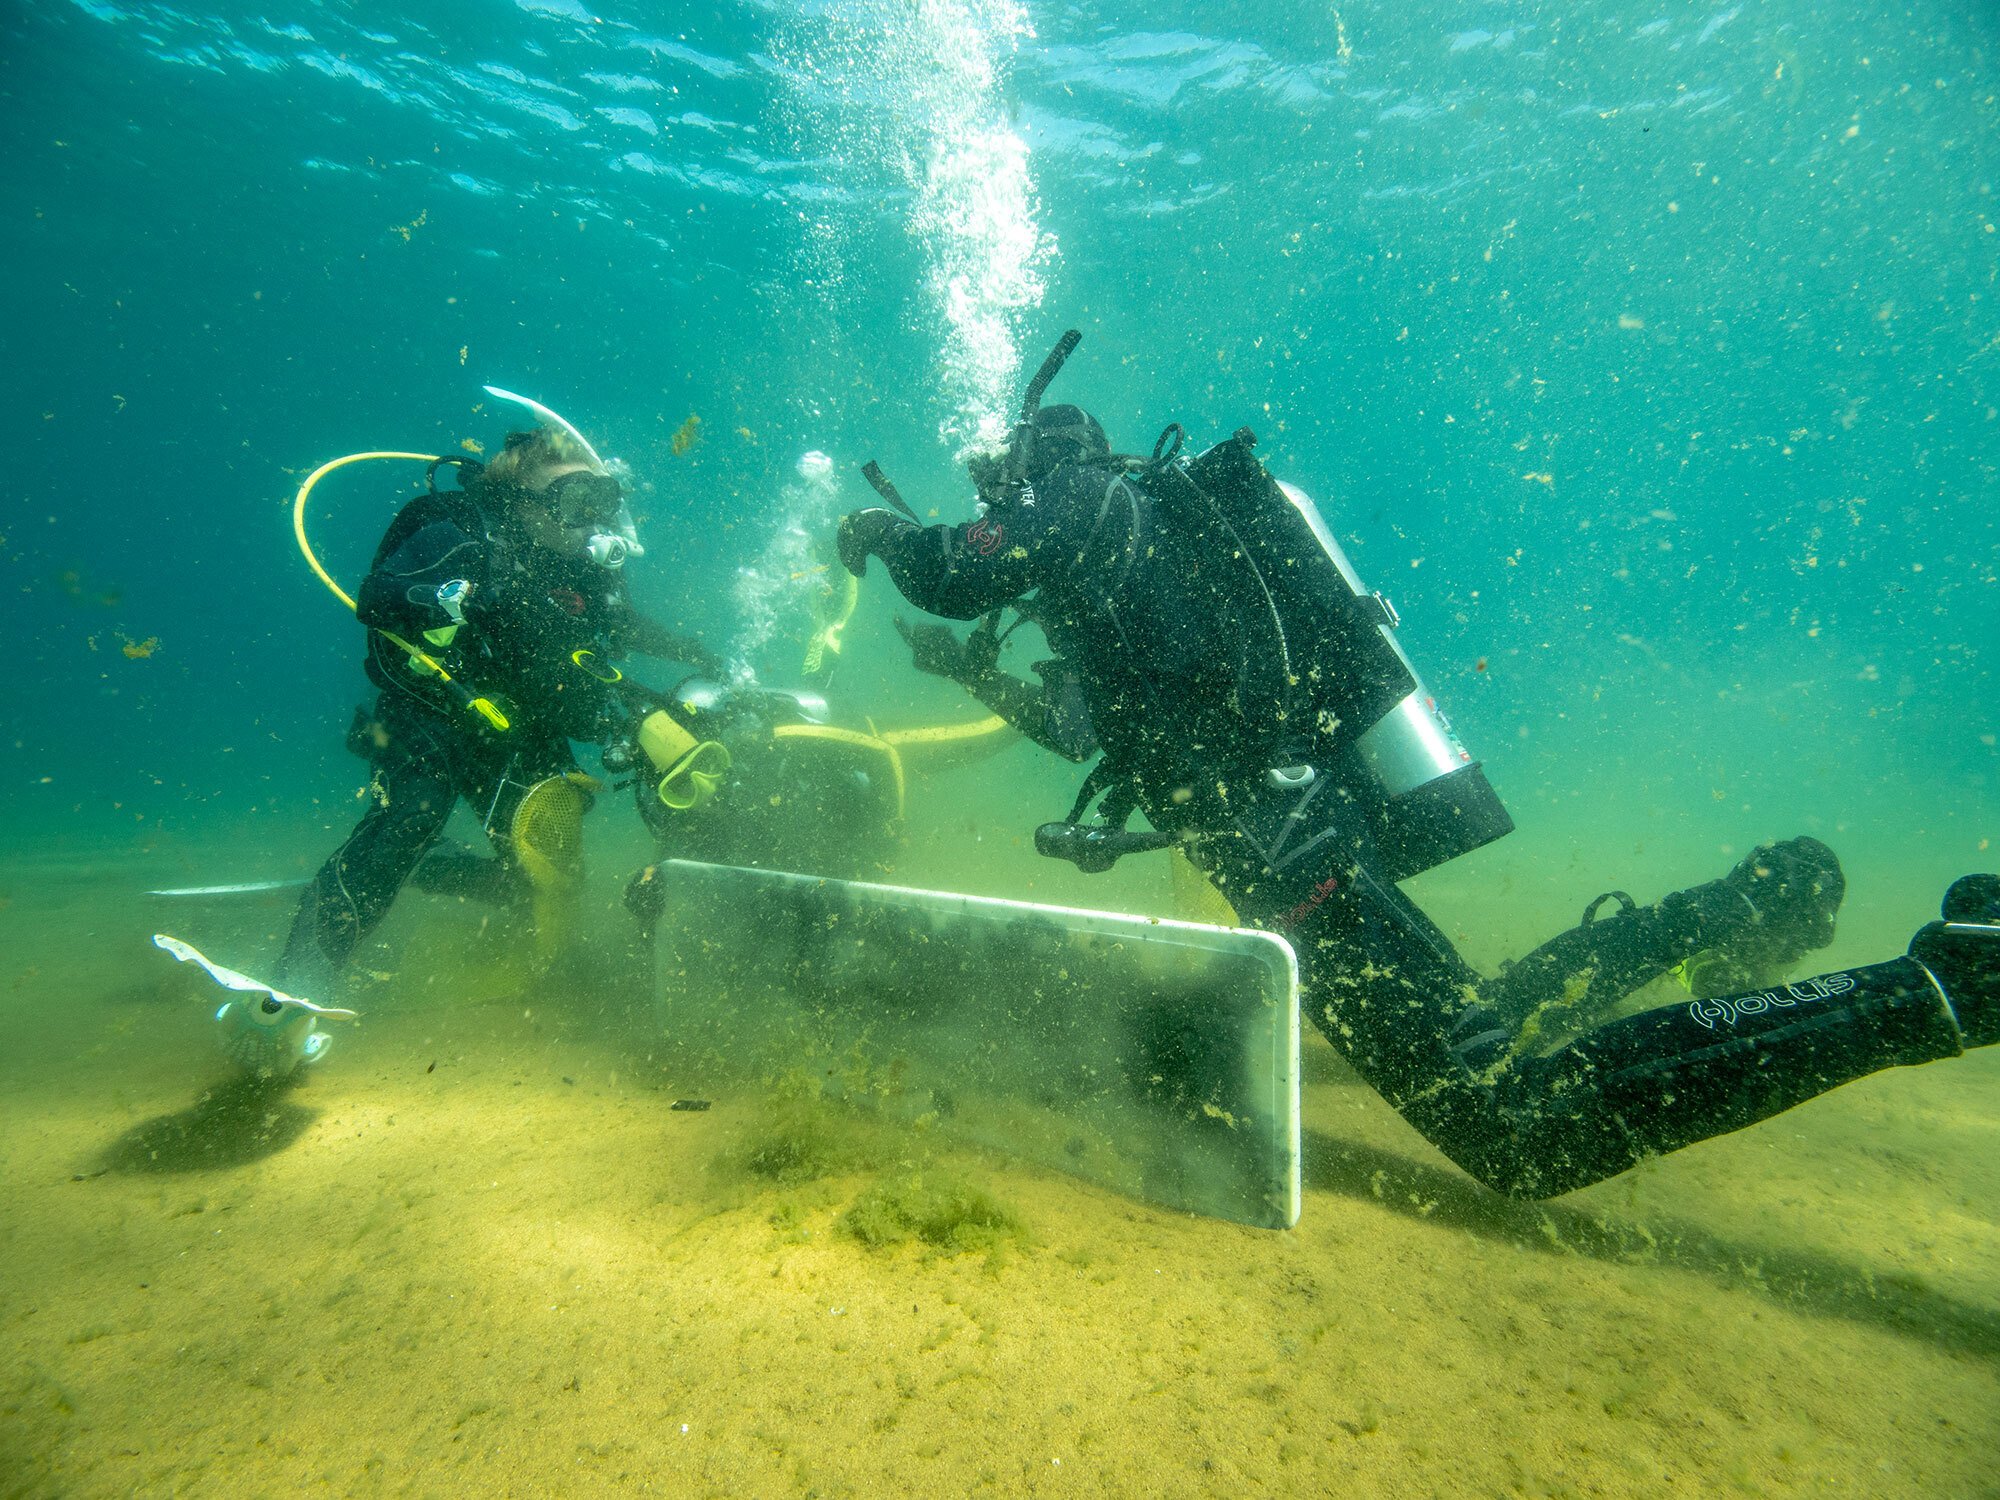 From sunken ships to underwear, here's what scuba divers find beneath Lake Tahoe